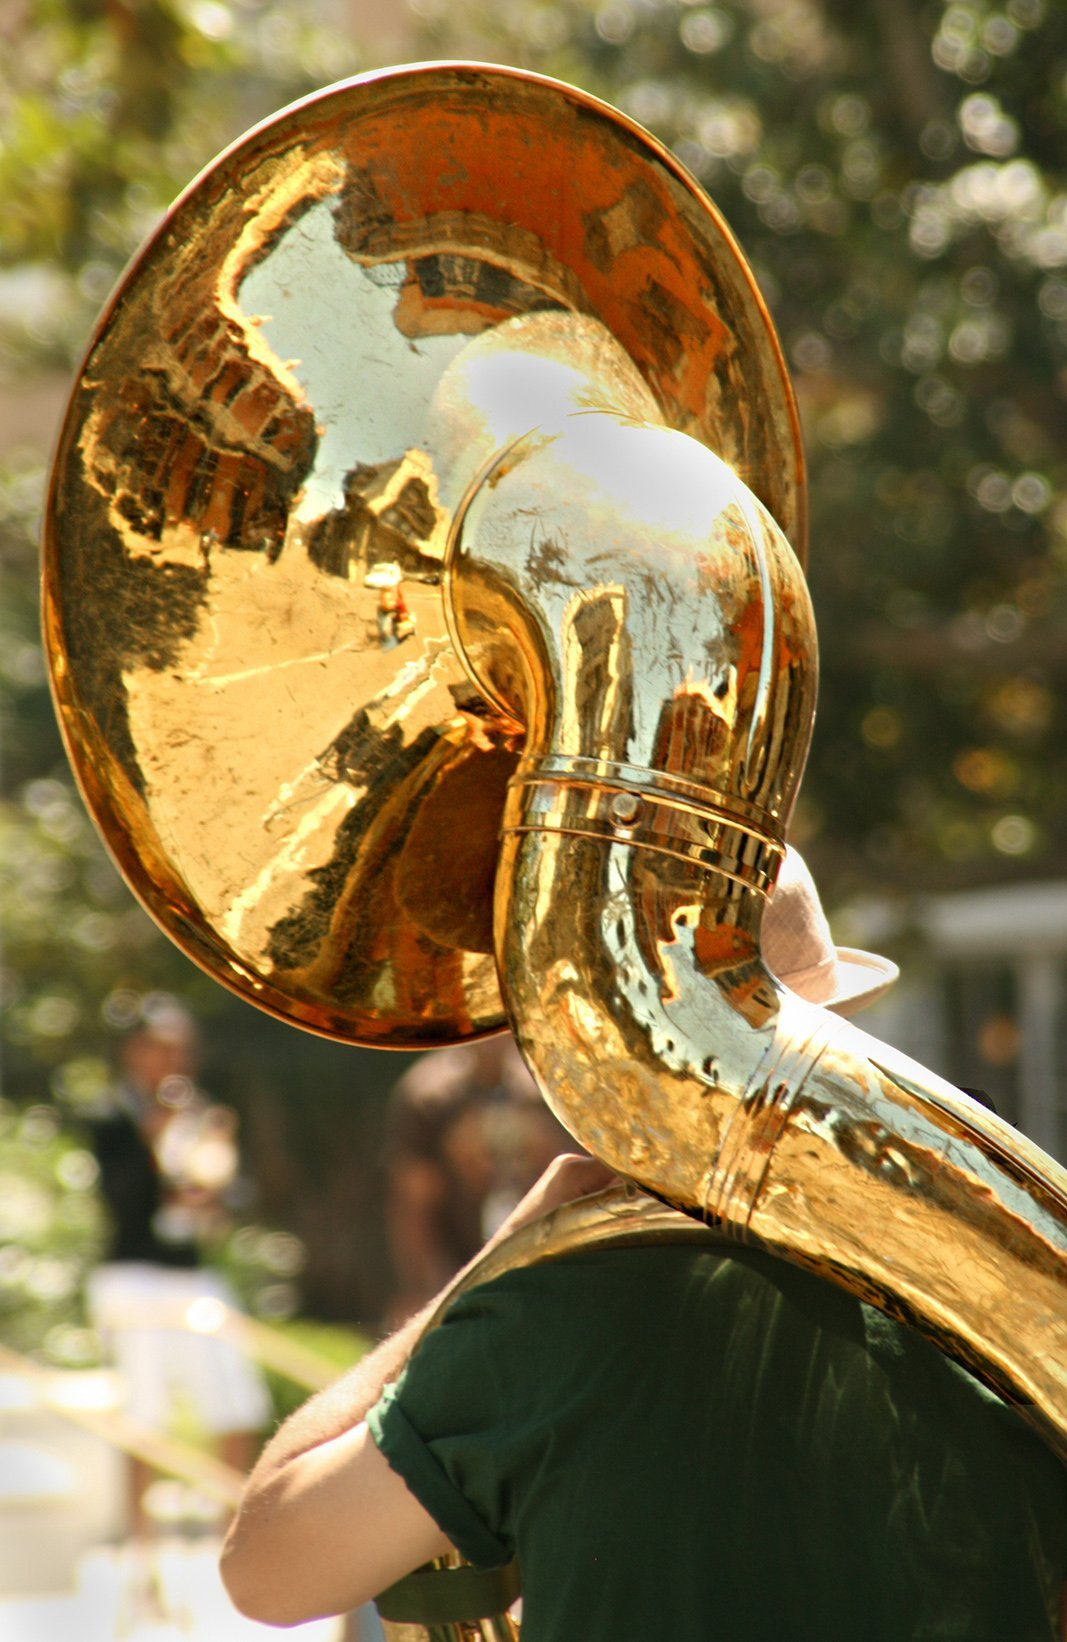 Tuba player on the streets of New Orleans